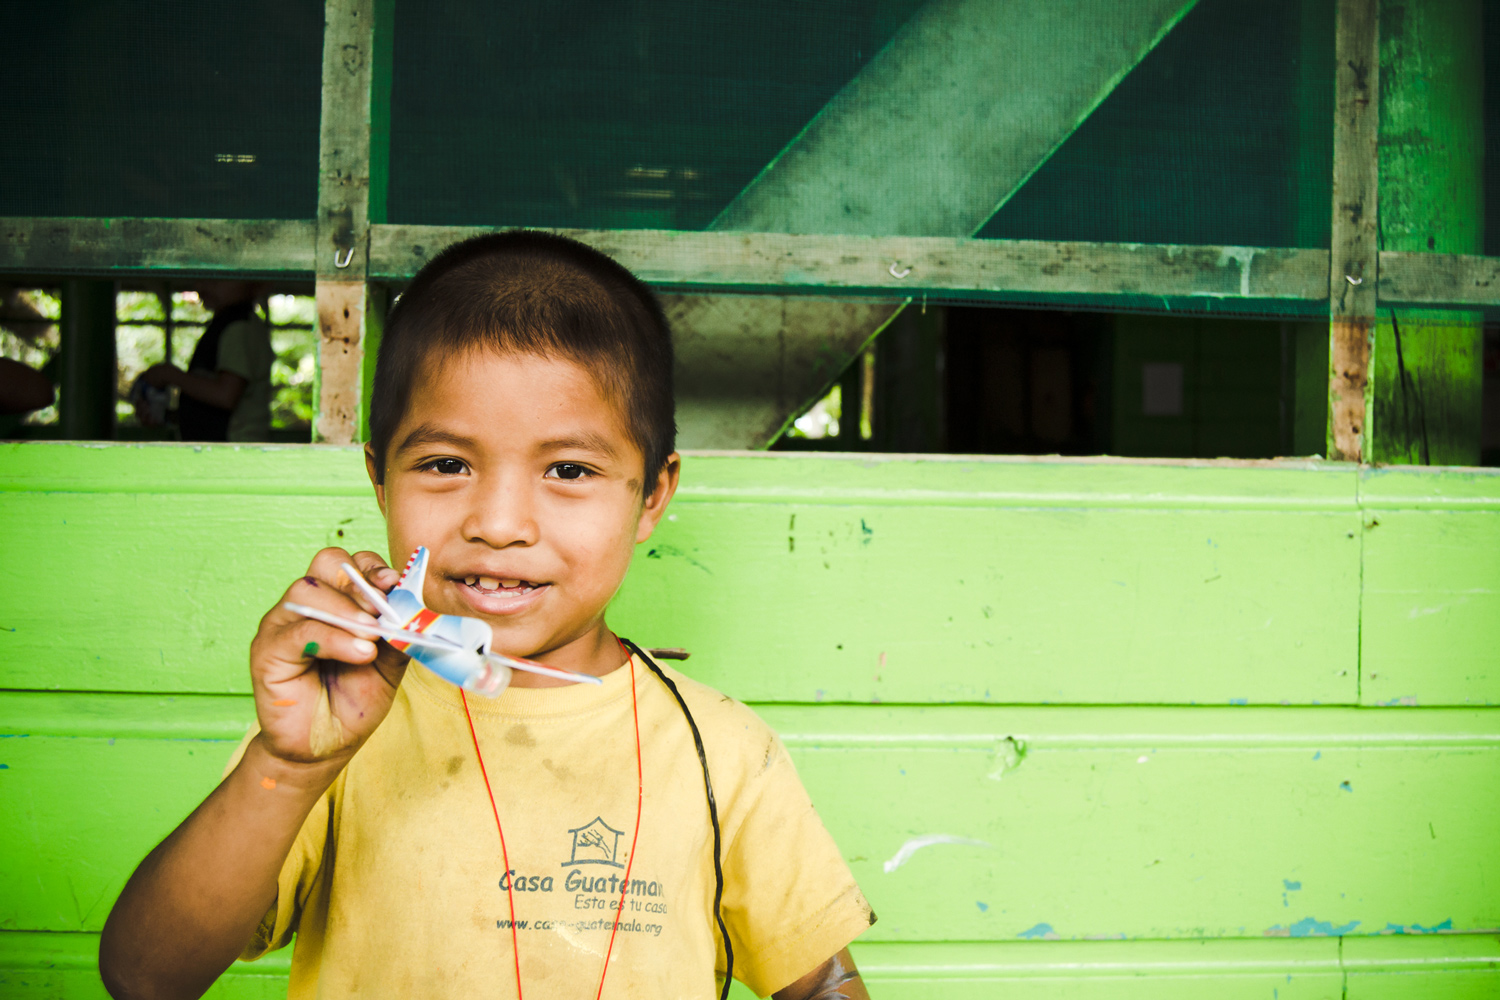 Casa-Guatemala_Boy-with-a-Toy-Plane.jpg